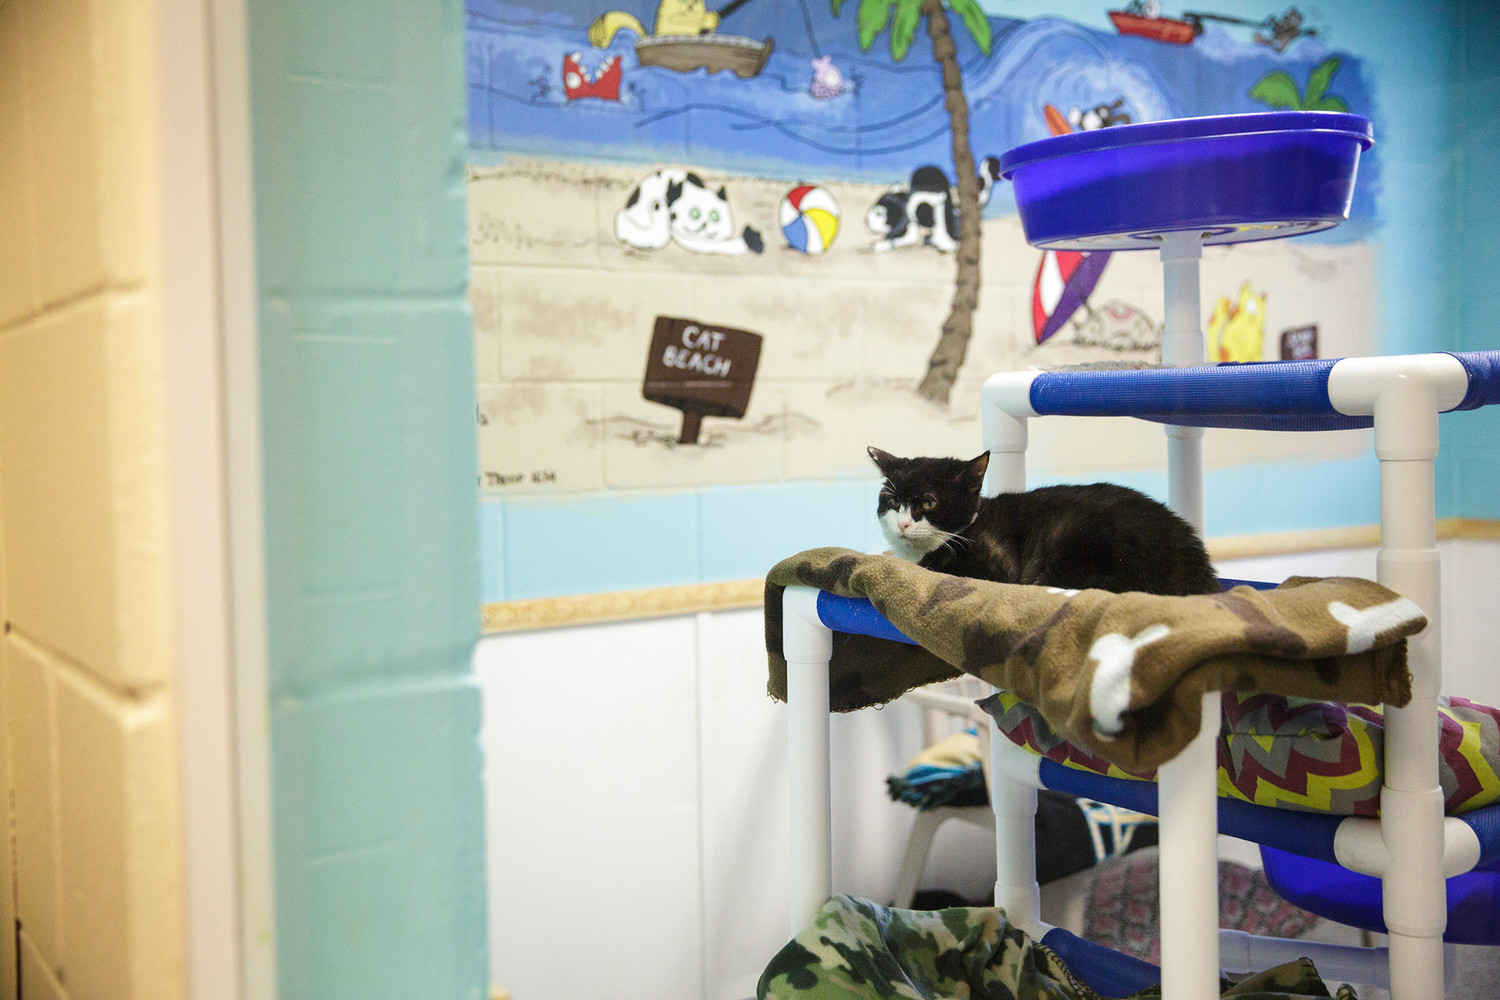 Only two cats are currently living at SAFE Animal Shelter as they rebuild their facility after Hurricane Irma. The shelter was inundated with knee-deep water and has made a quick recovery with their sights set on early December for a reopening celebration.